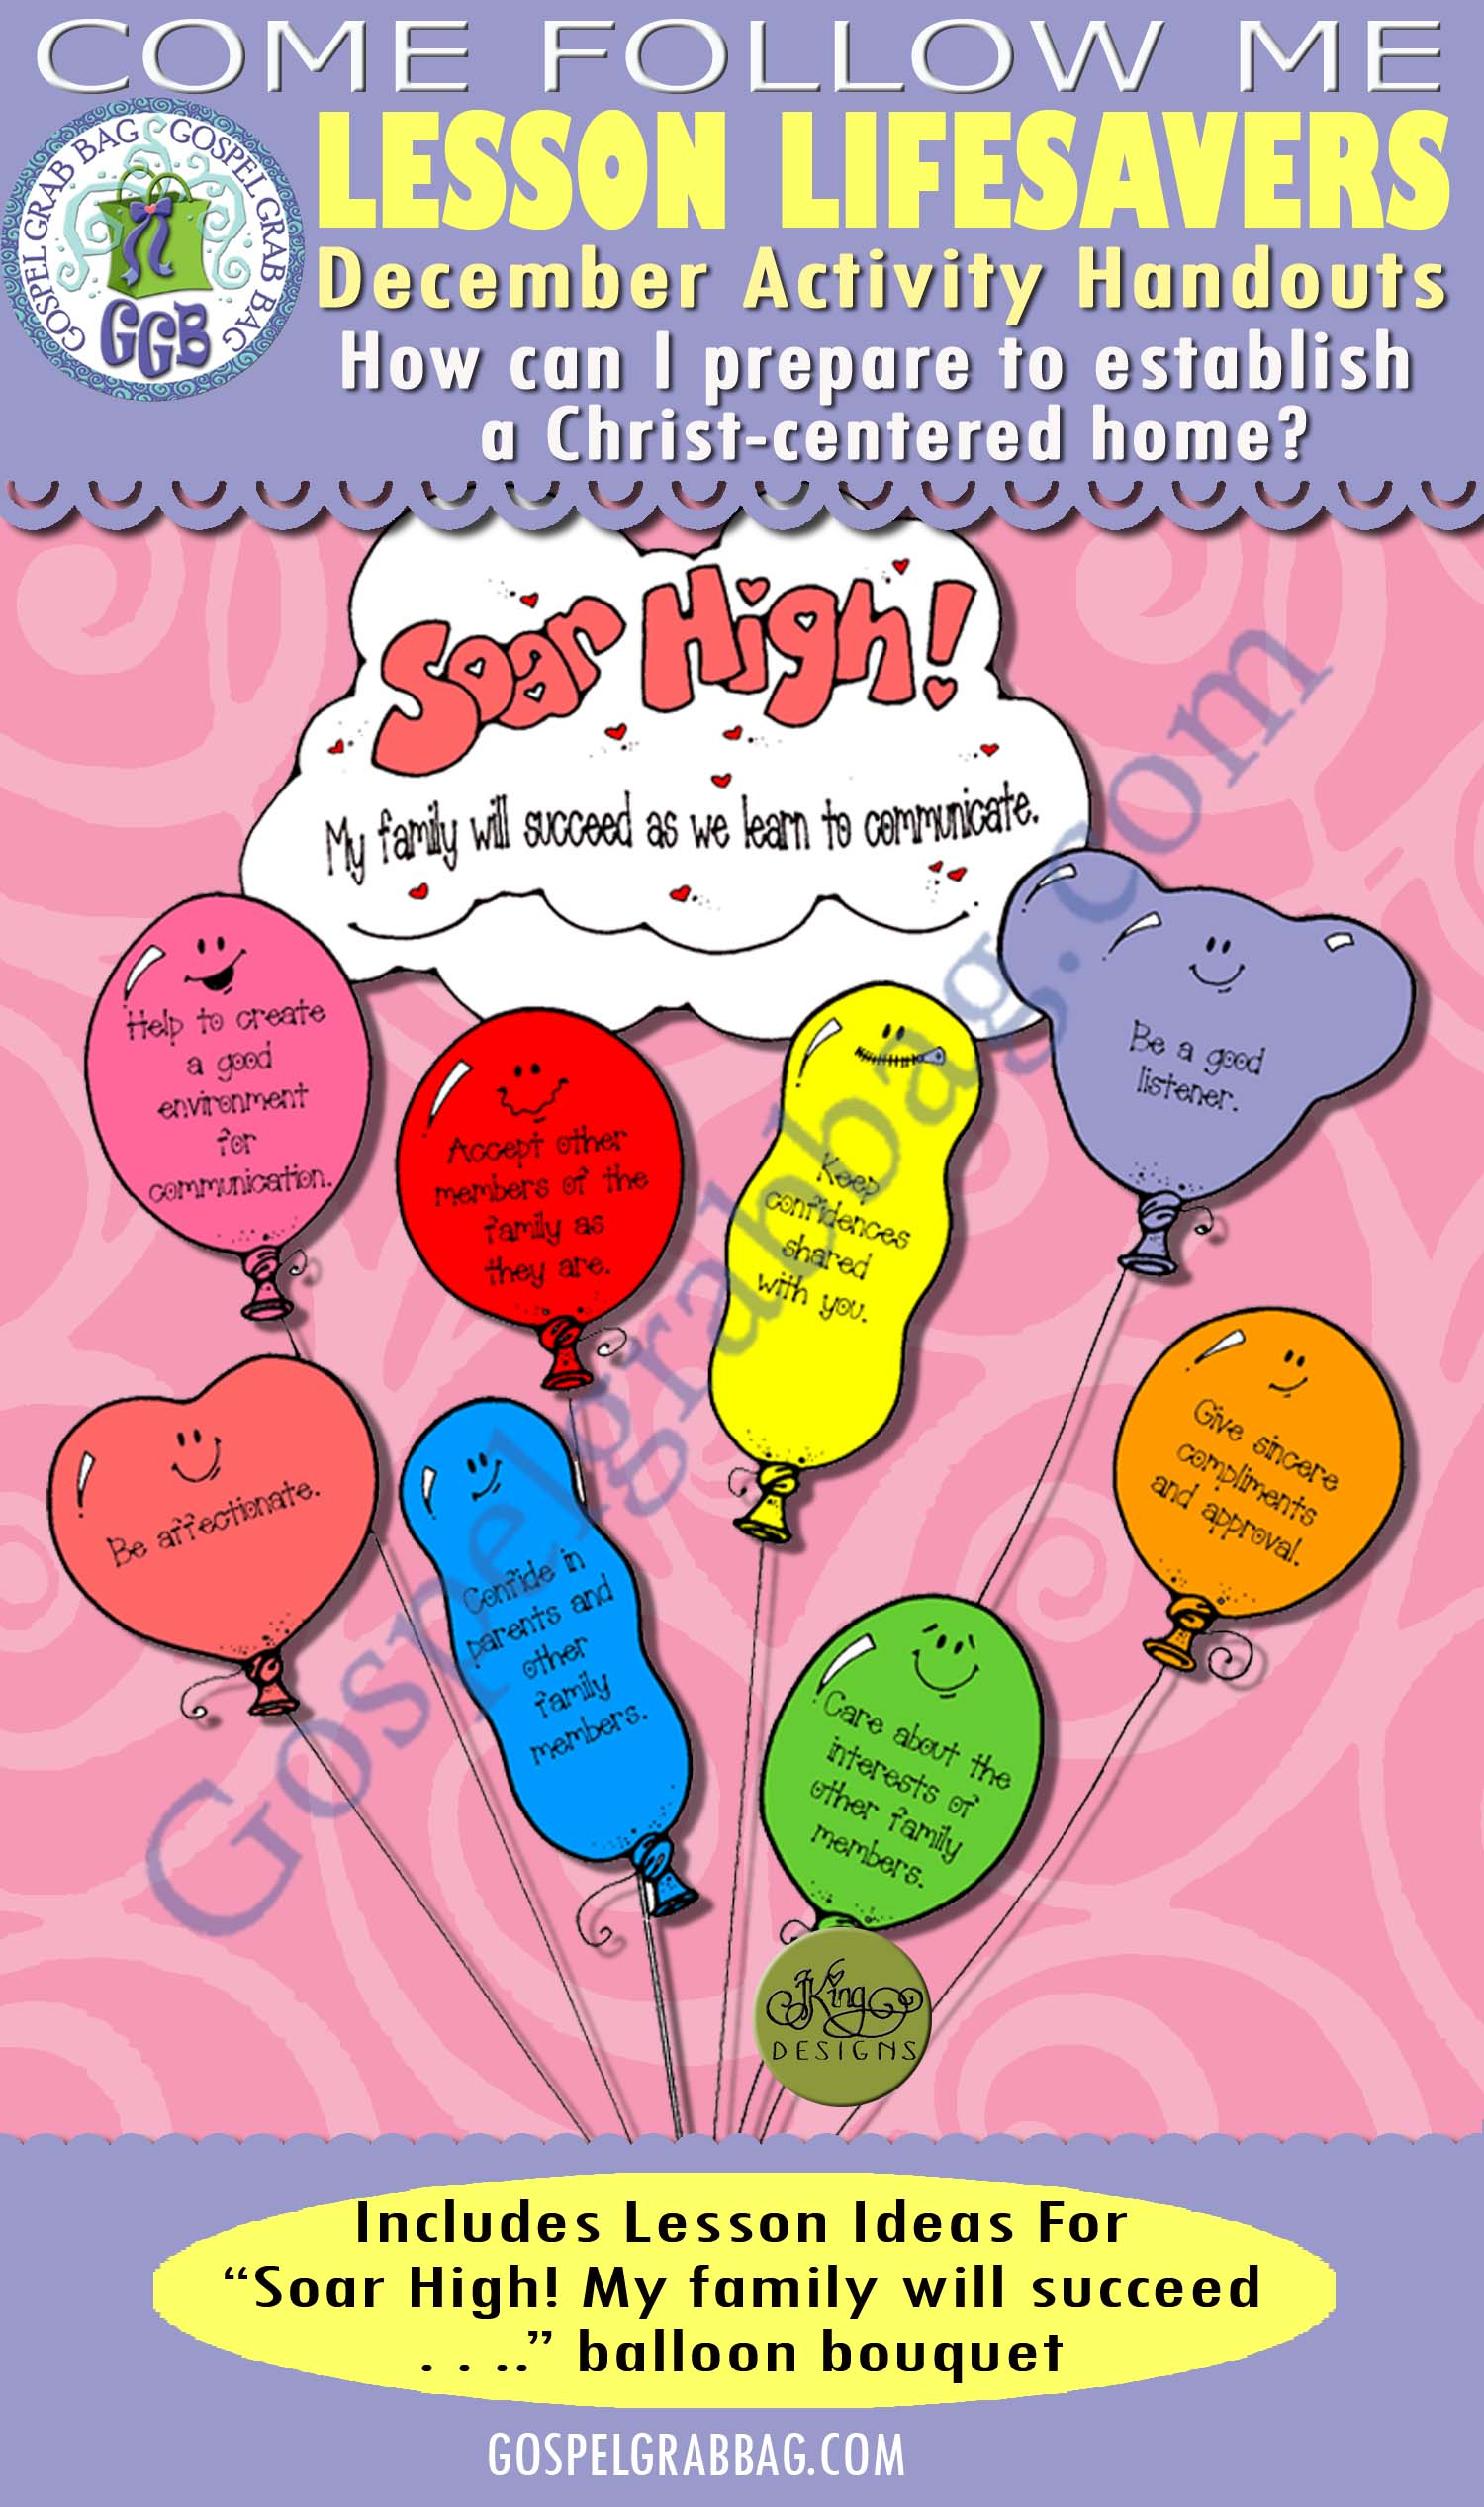 "$1.75 December Lesson 3 - Come Follow Me ""How can I prepare to establish a Christ-centered home?"" ACTIVITY: Communicate with My Family - Soar High! balloon bouquet, GospelGrabBagcom"